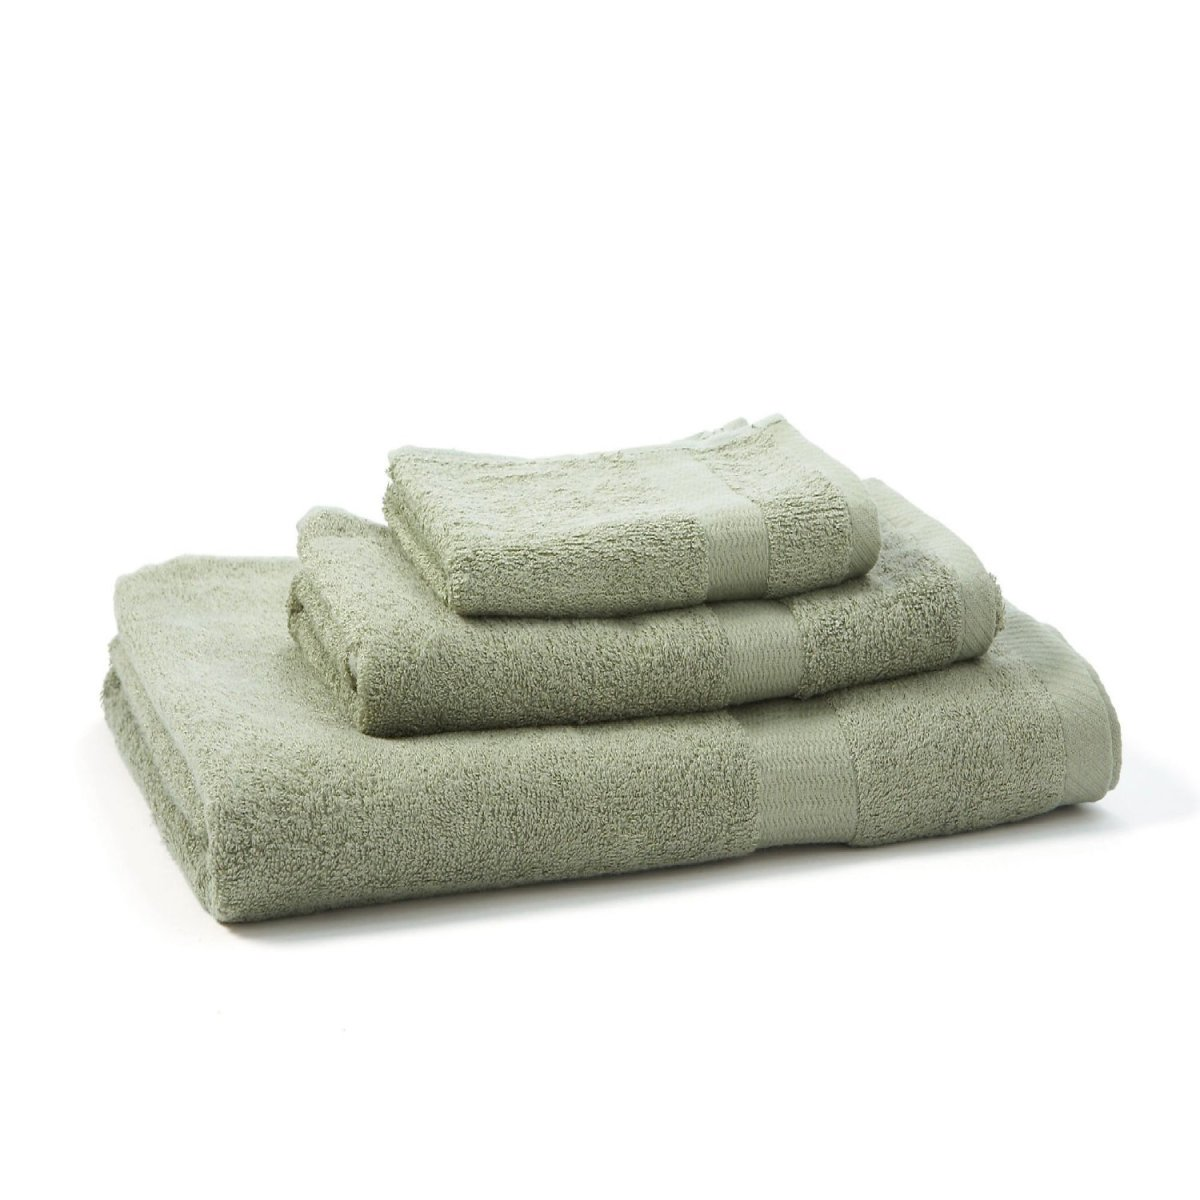 If you're looking for an ultra-green towel option, then this is one of the better ones out there. It's made from 100% Bamboo Viscose.